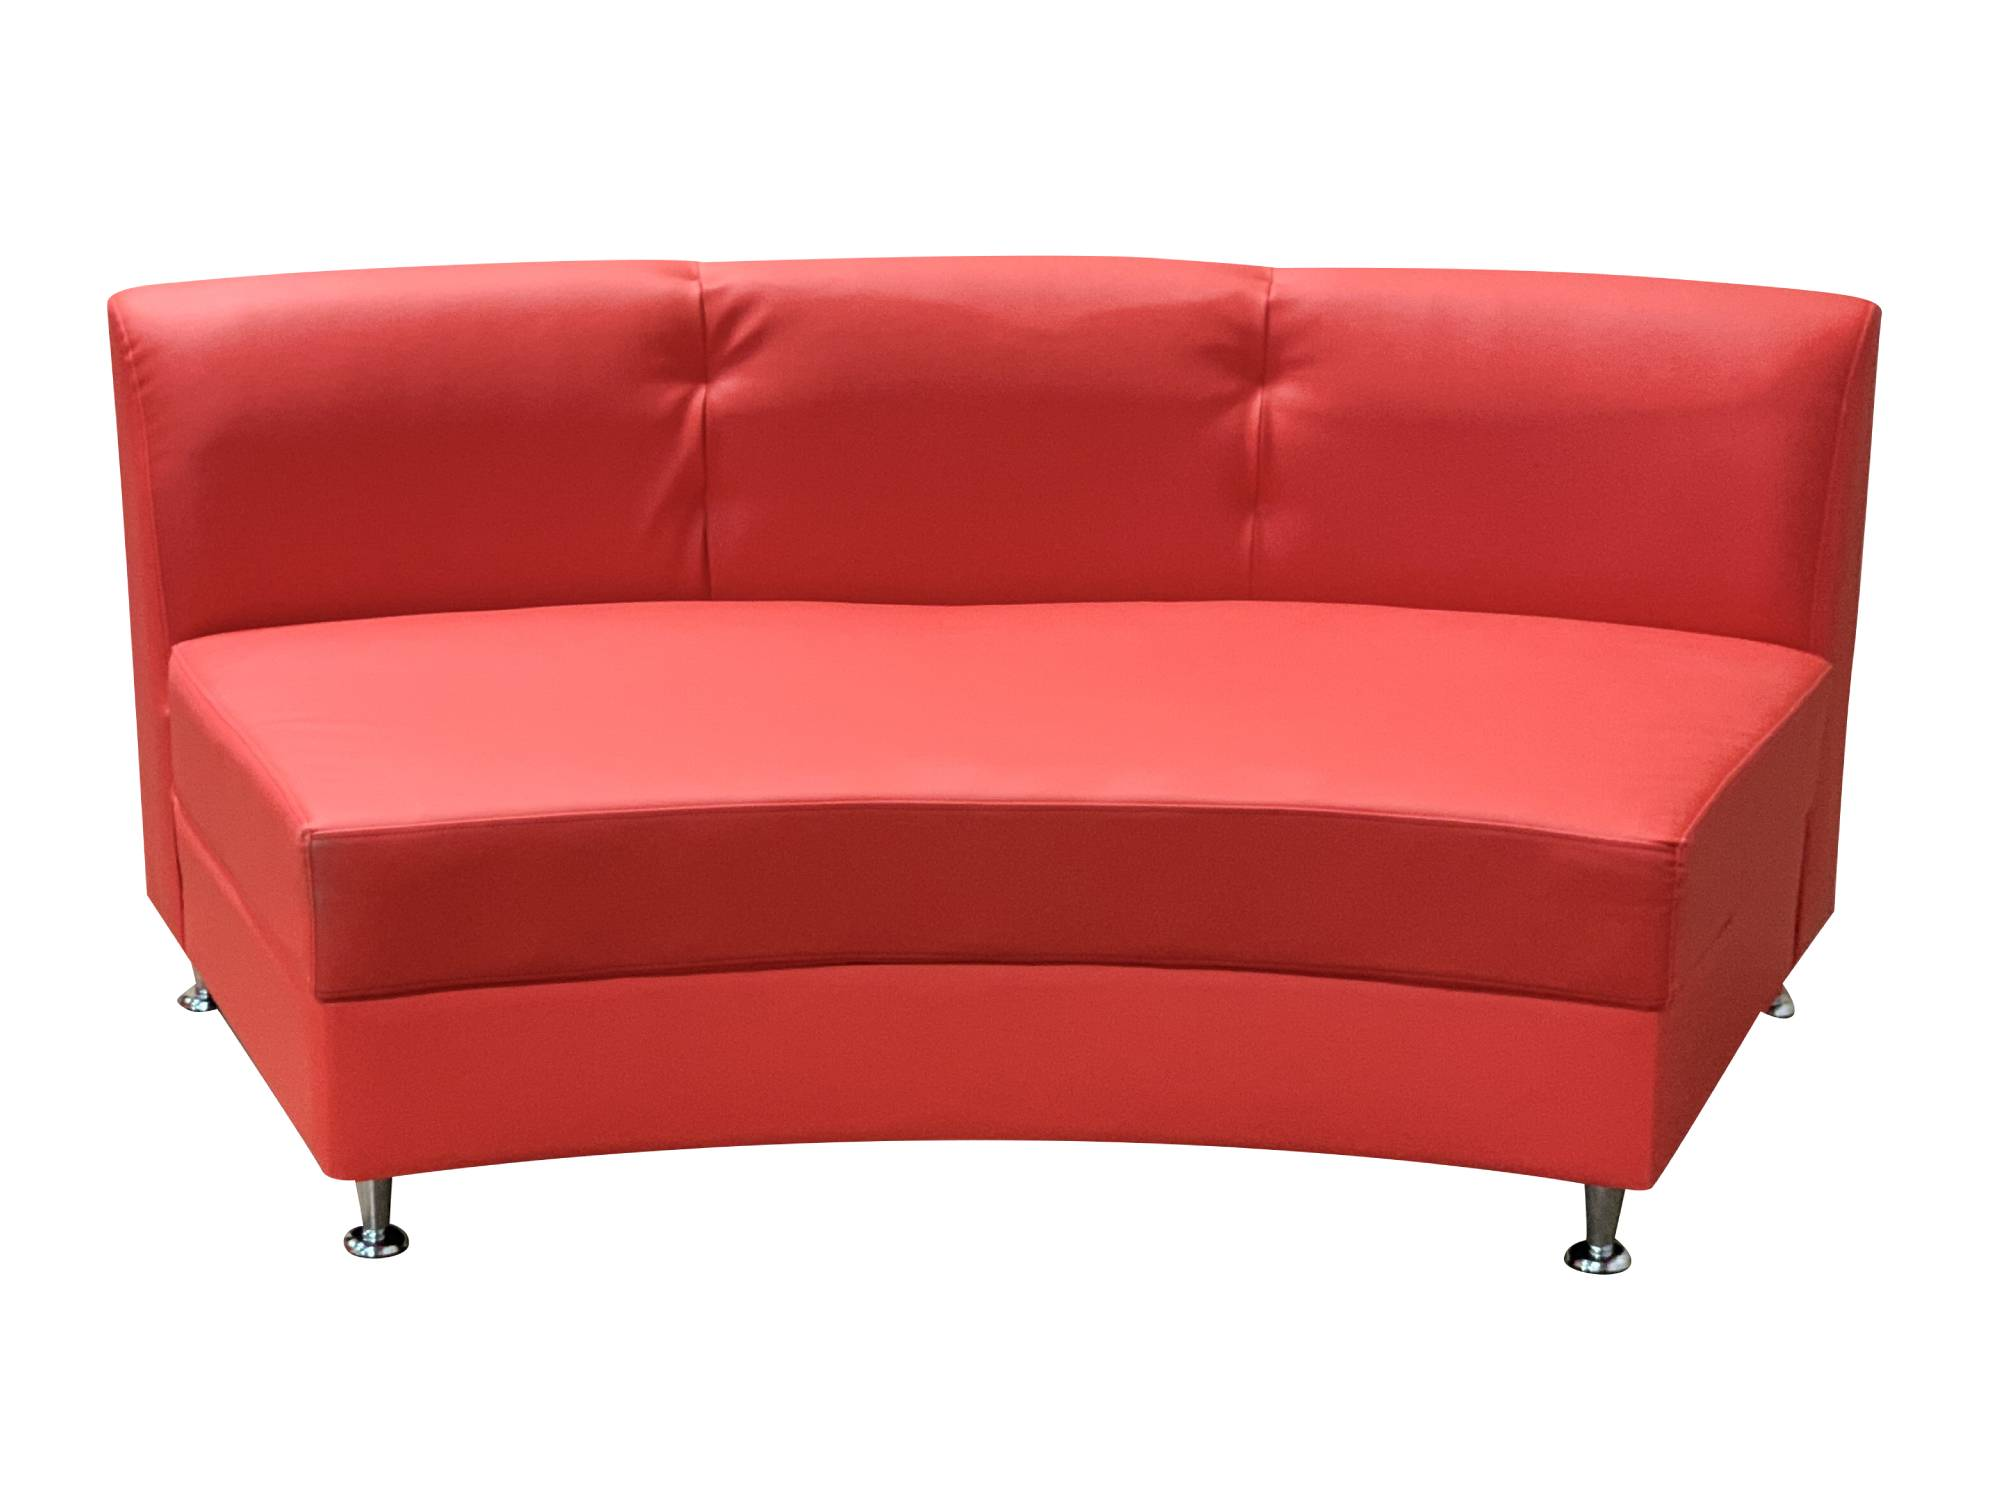 LUXURY ARMLESS SOFA SECTION - RED